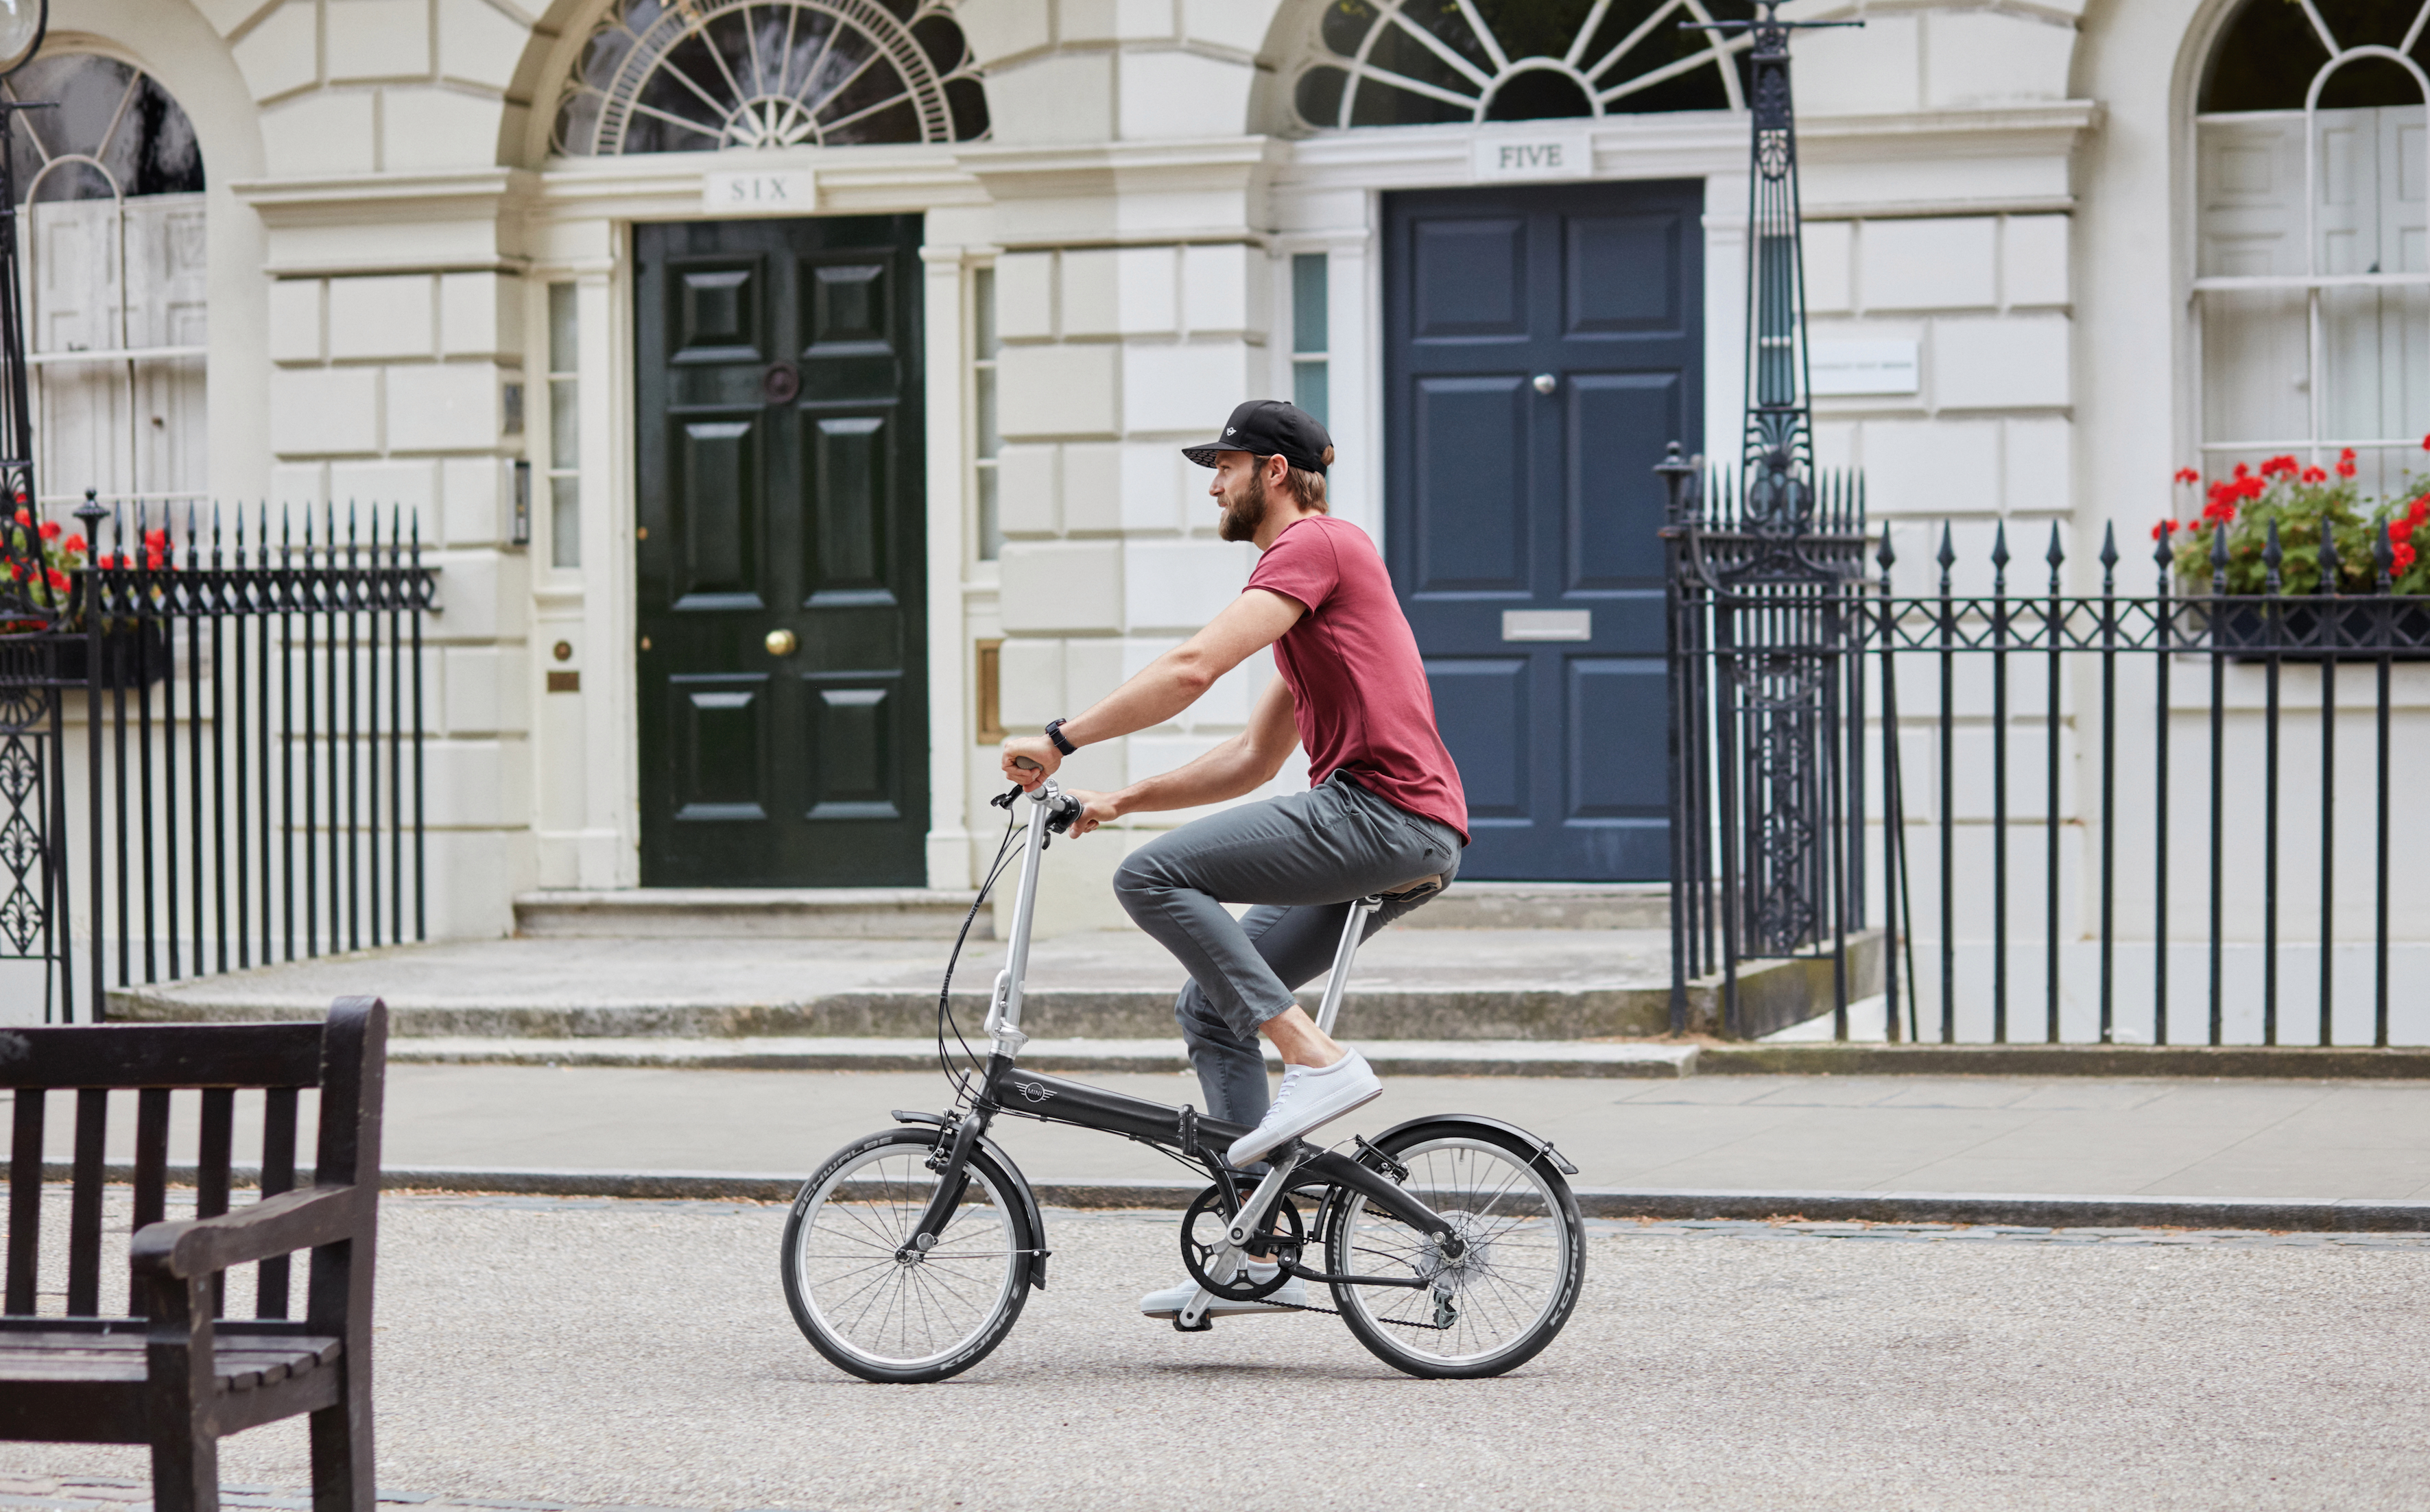 Top bit of kit, folds quicker than an origami blackbelt. Lightweight aluminium frame, leather seat, leather handles. Very cool. Head over to shop.mini.co.uk